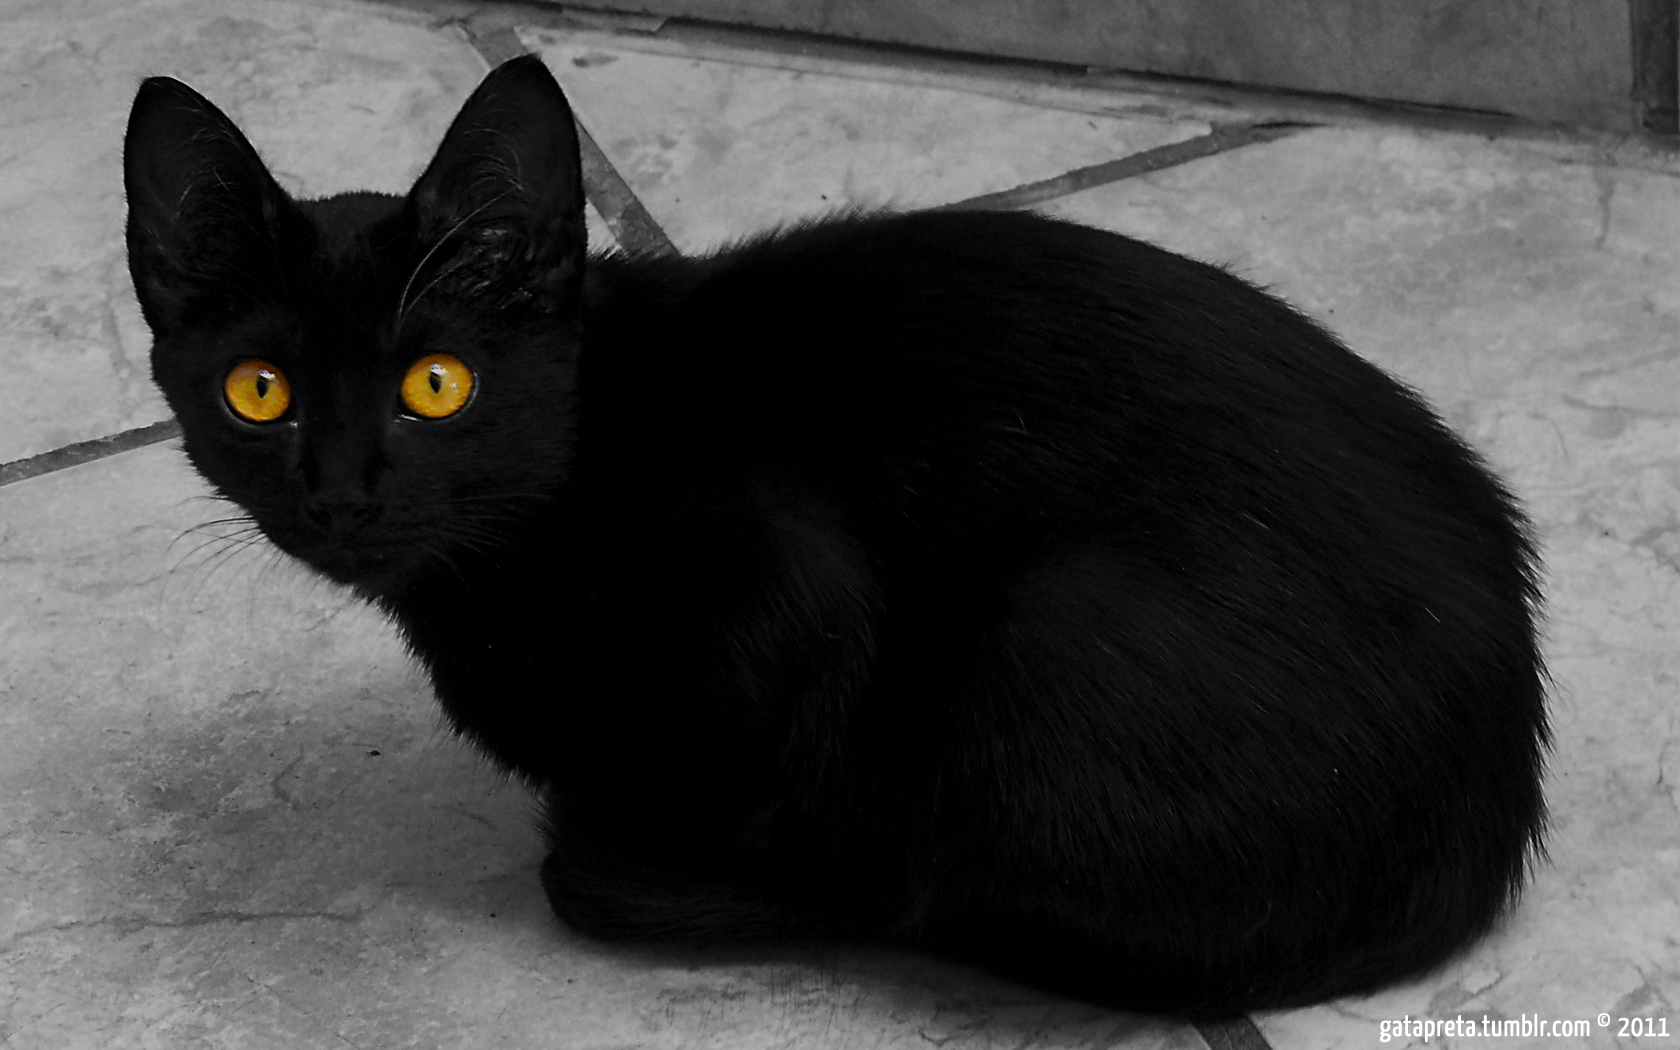 Black cat with yellow eyes : Desktop and mobile wallpaper ...